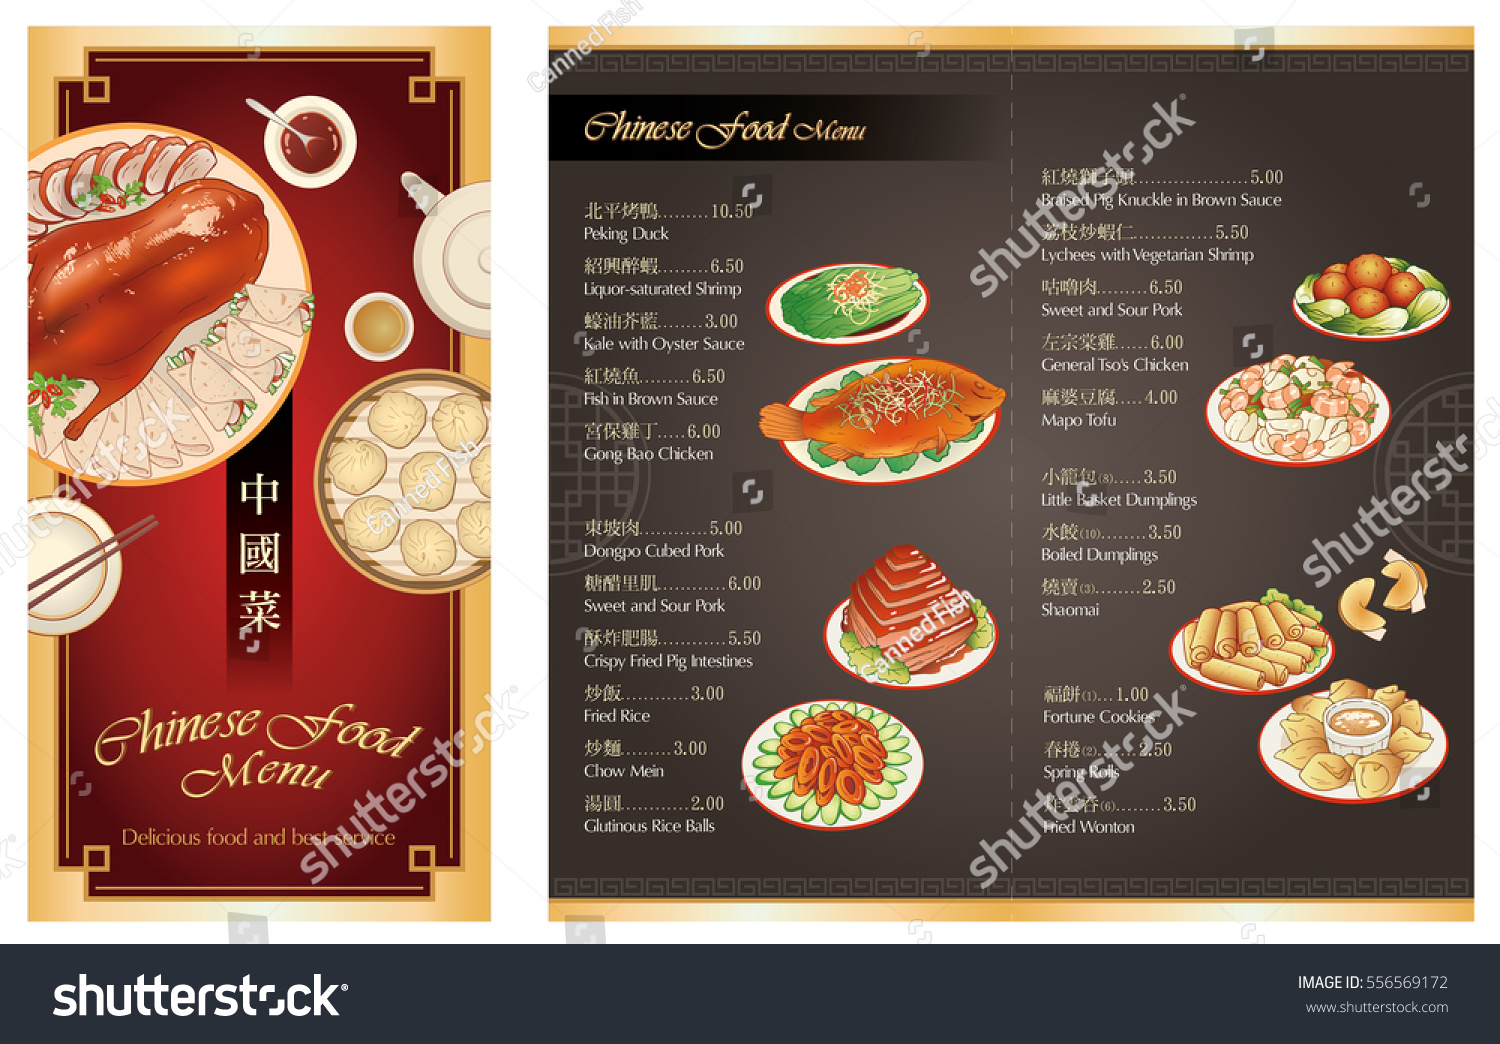 Chinese Food Menu Design Template Chinese Stock Vector ...